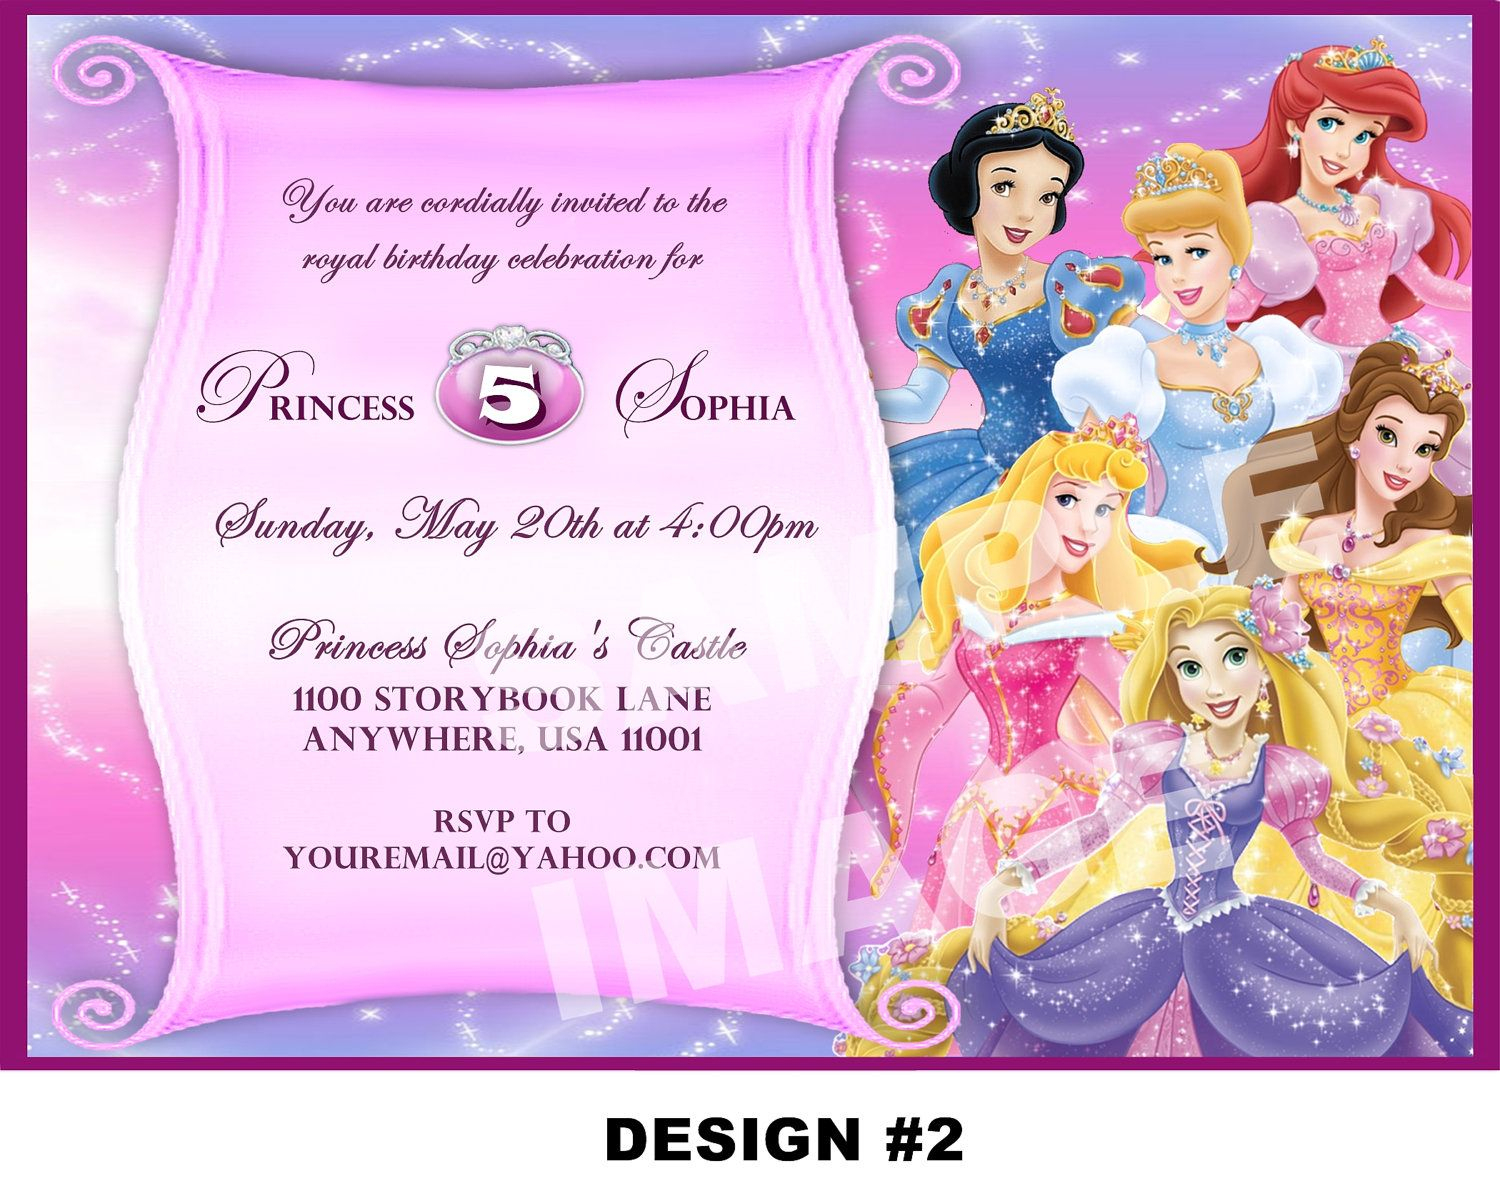 Disney Princess Birthday Invitation Card Maker Free | Party In 2019 - Free Printable Princess Invitation Cards